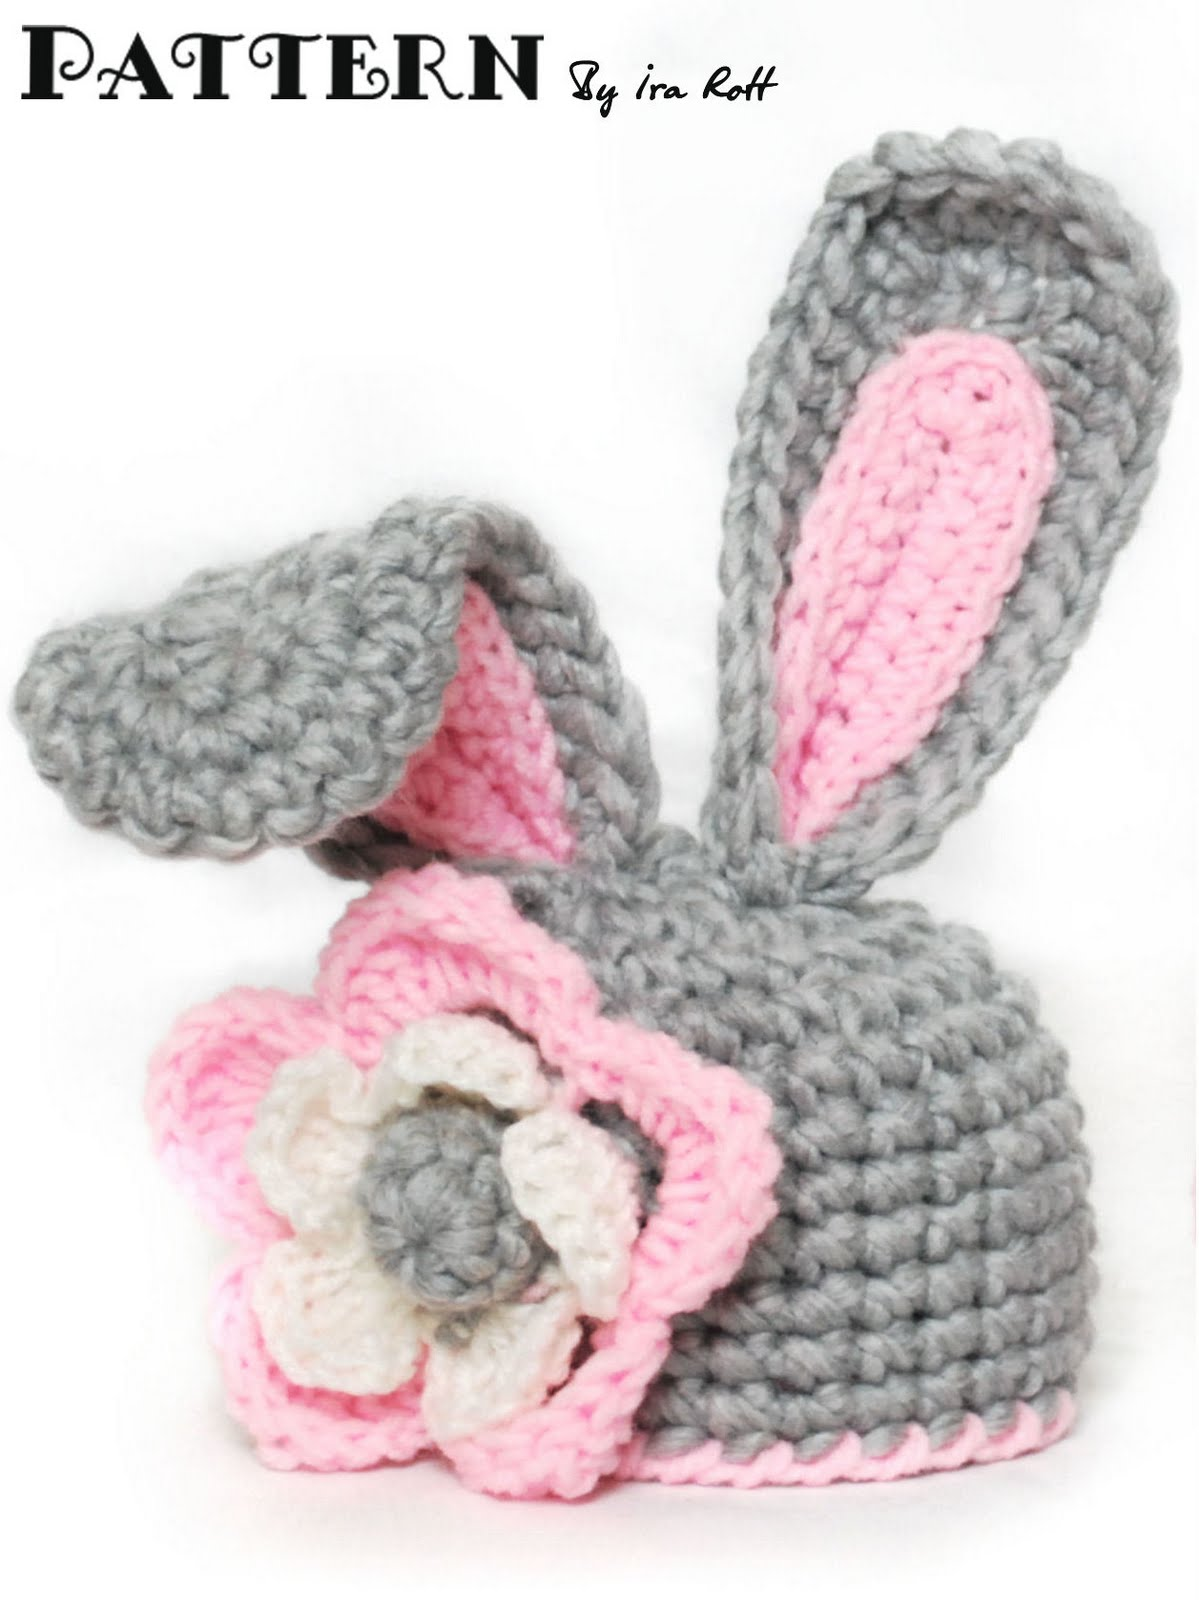 Crochet Pattern For Newborn Bunny Hat : Fashion Crochet Design By Ira Rott: Crochet Bunny Hat With ...